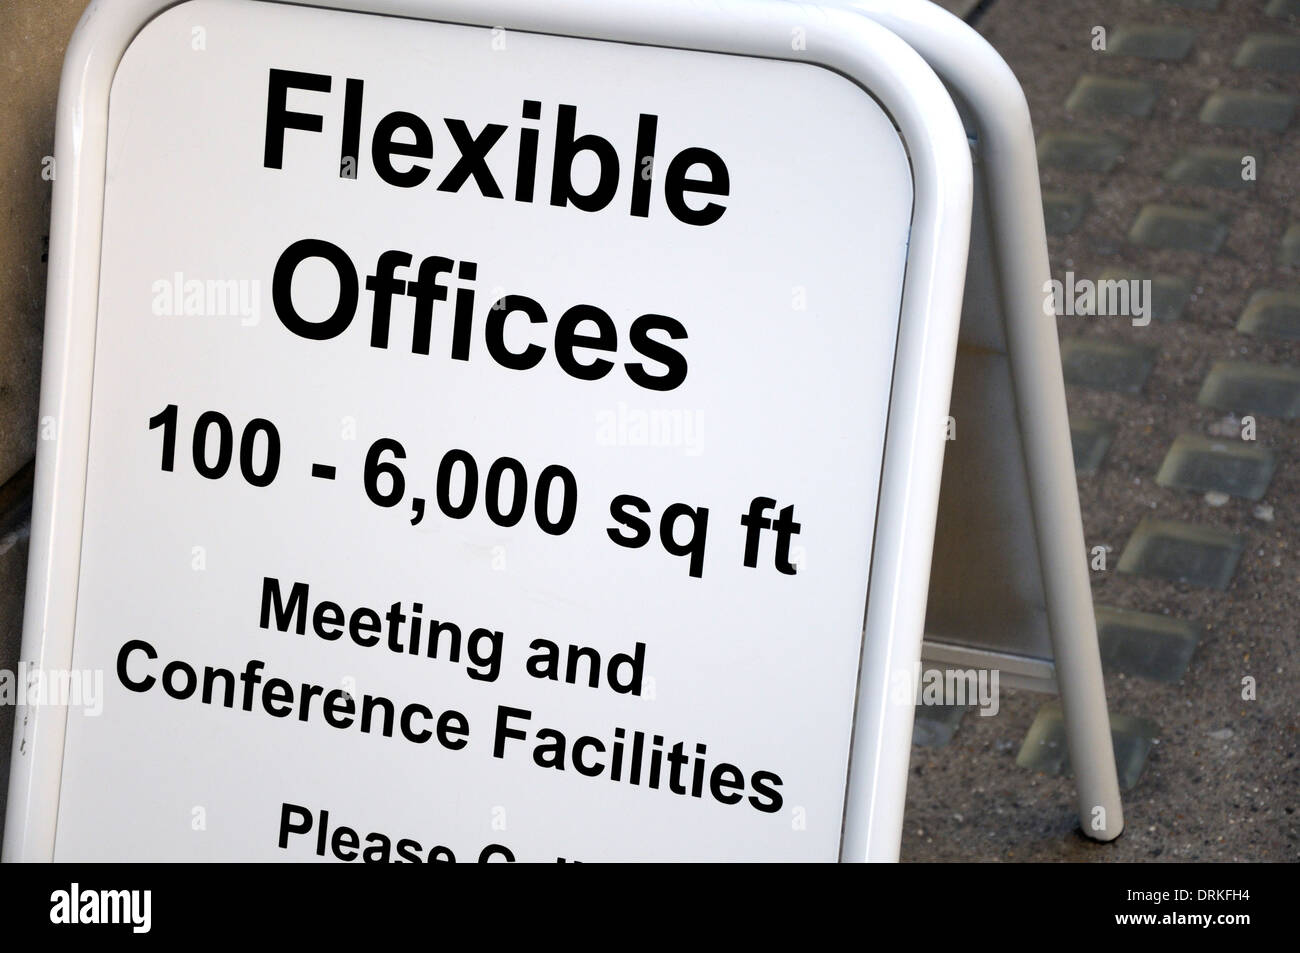 London, England, UK. Sign in the street - Flexible Office space - Stock Image